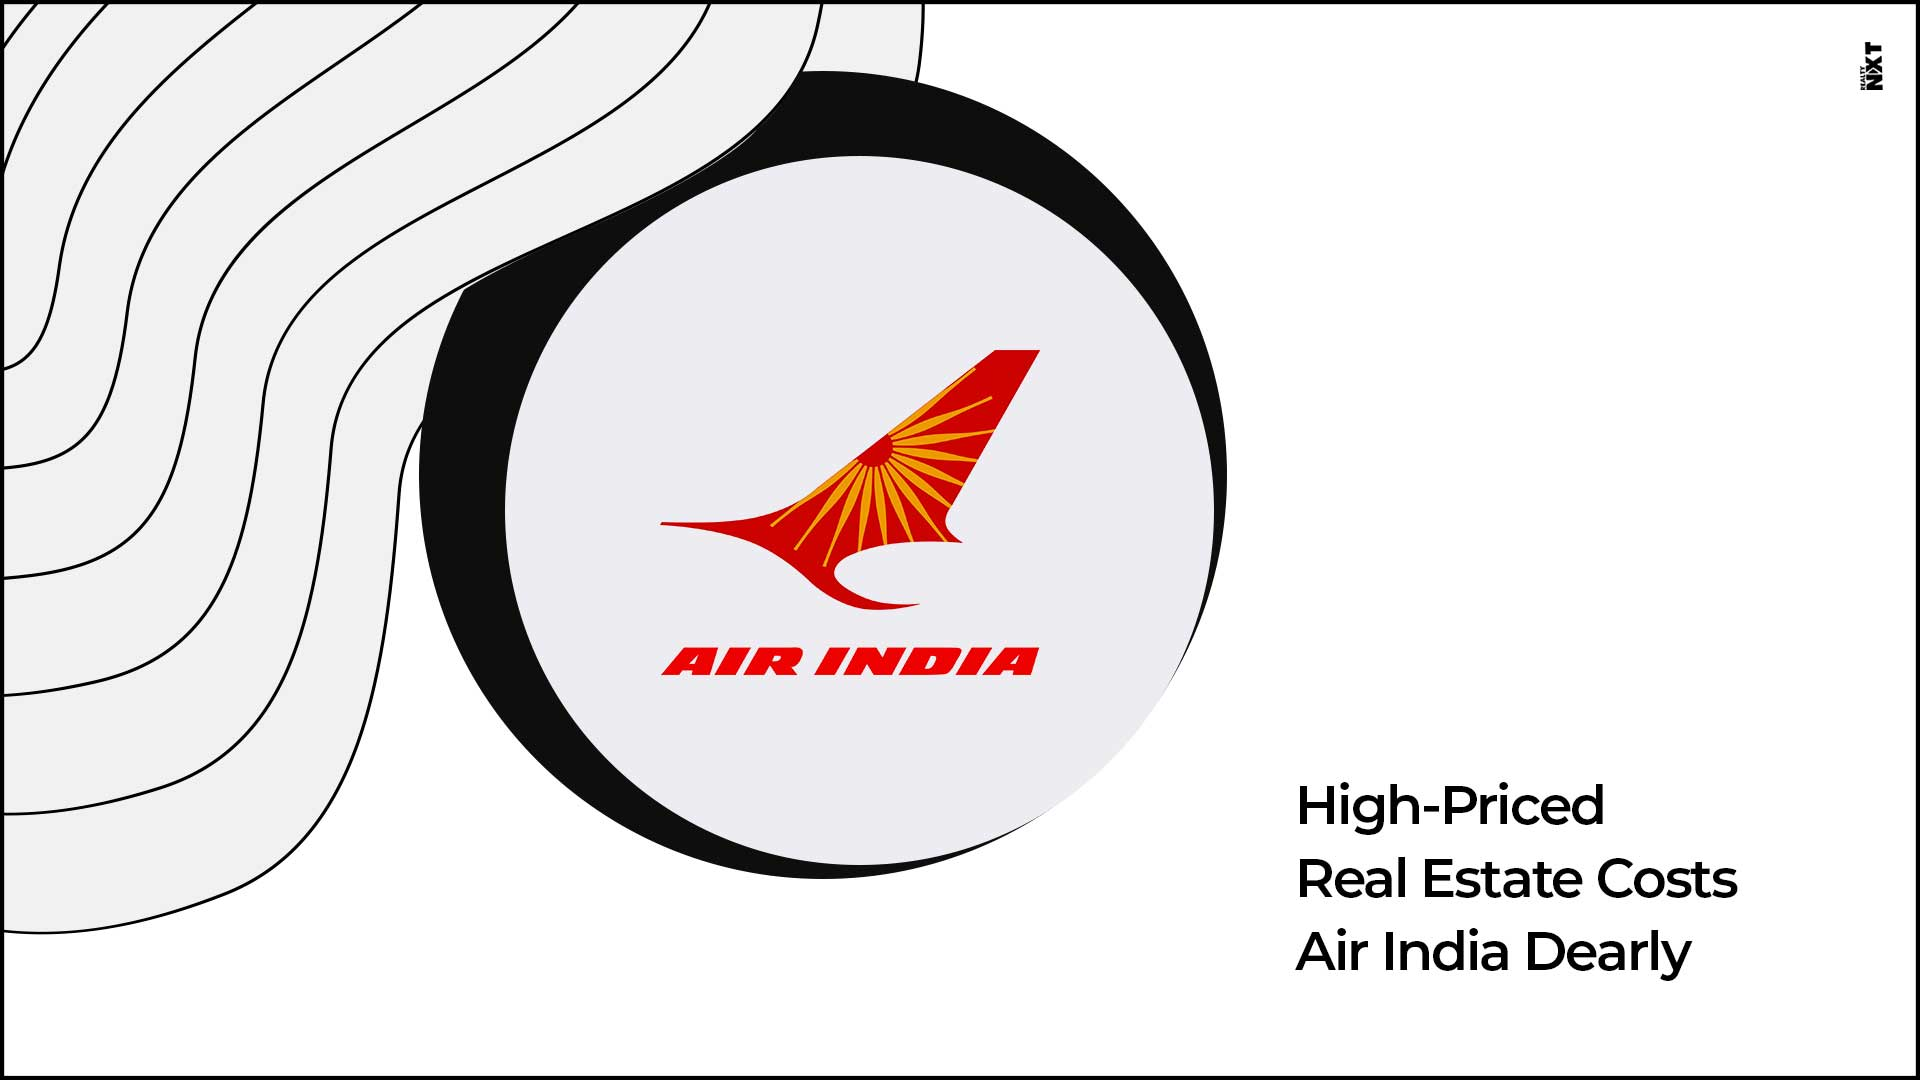 Air India Fails To Sell Its Real Estate Due to Hefty Price Tags